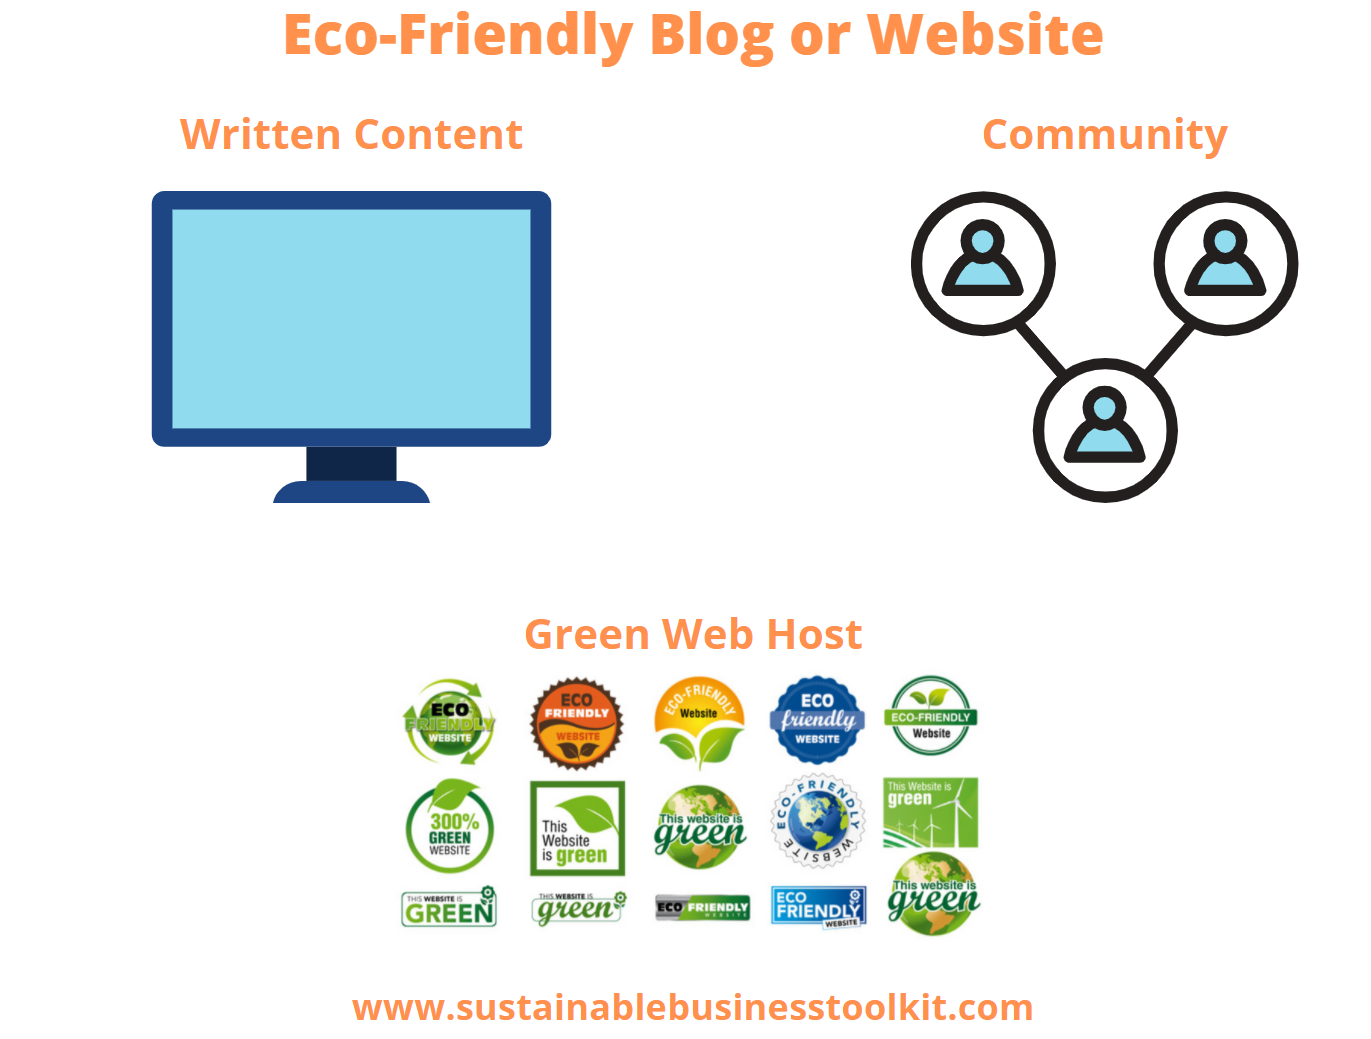 Green Business Idea: Eco-Friendly Blog or Website - Write content, foster a community, and use a green web host